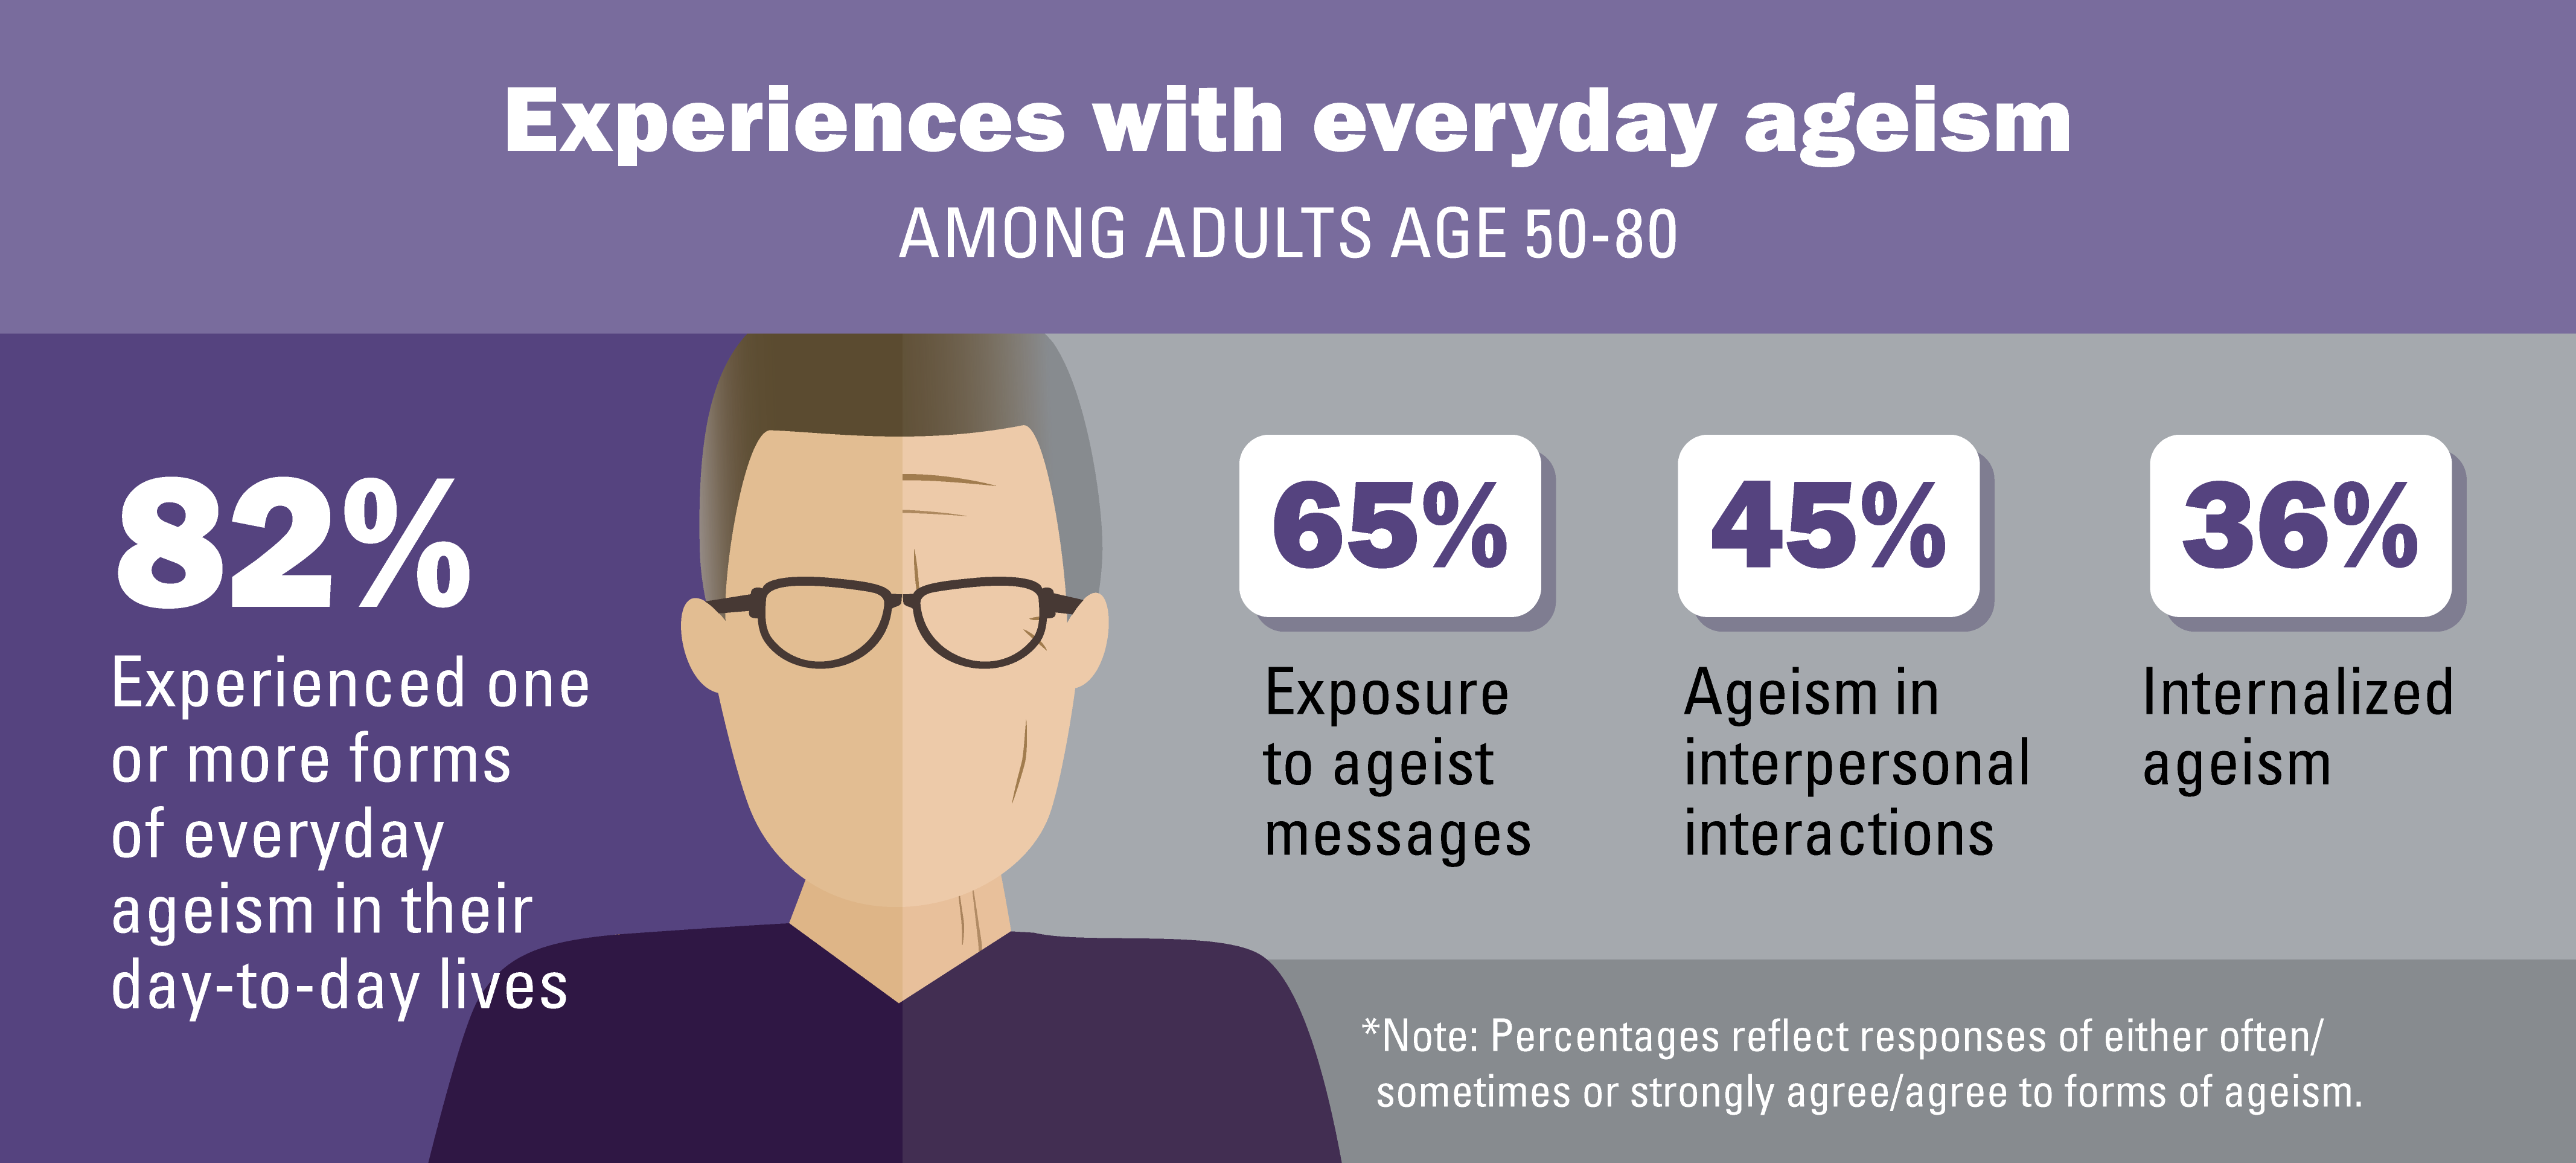 82% experienced one or more forms of everyday ageism in their day-to-day lives